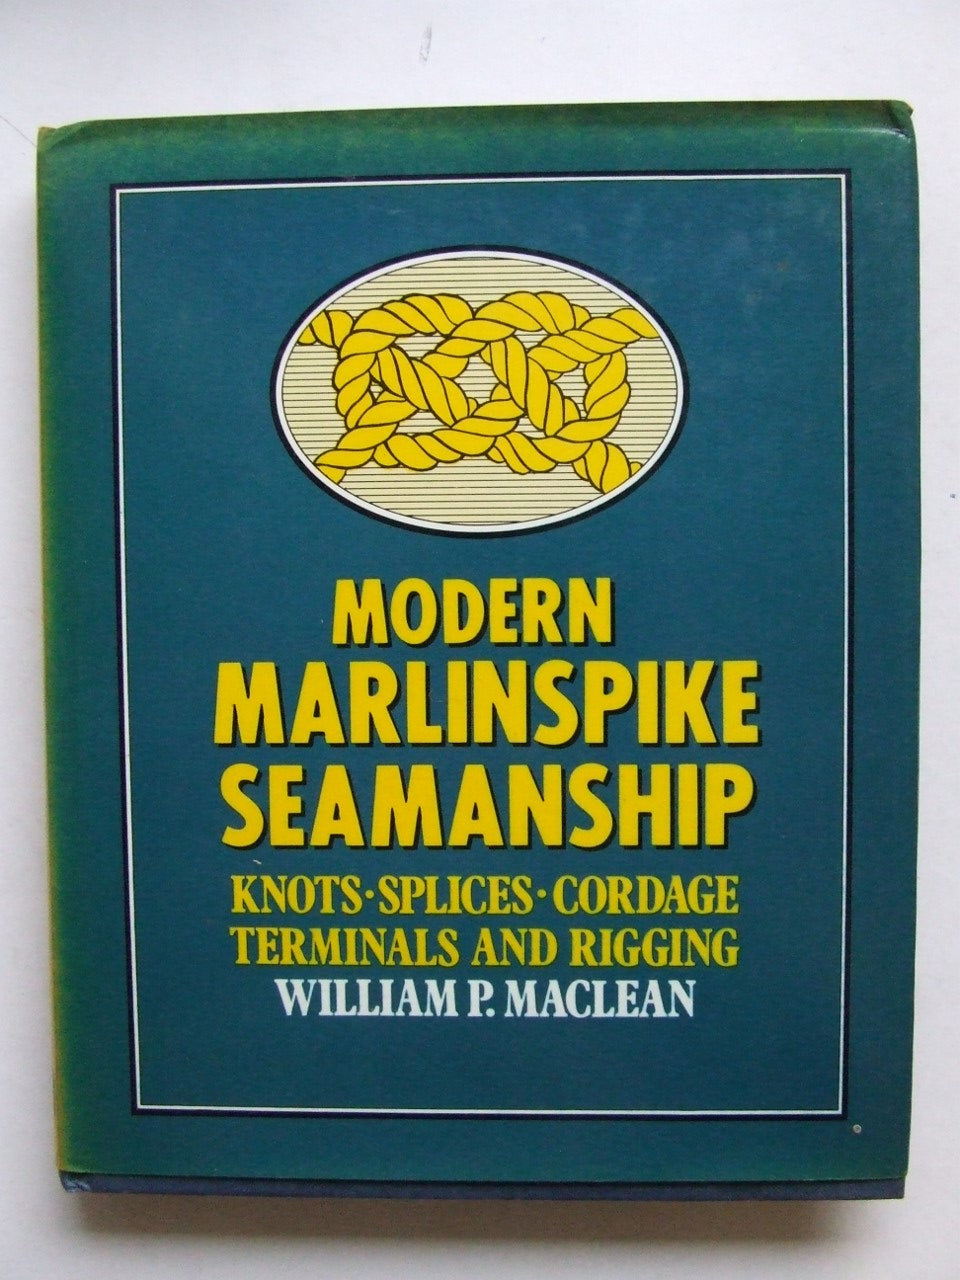 Modern Marlinspike Seamanship  -  knots, splices, cordage, terminals and rigging